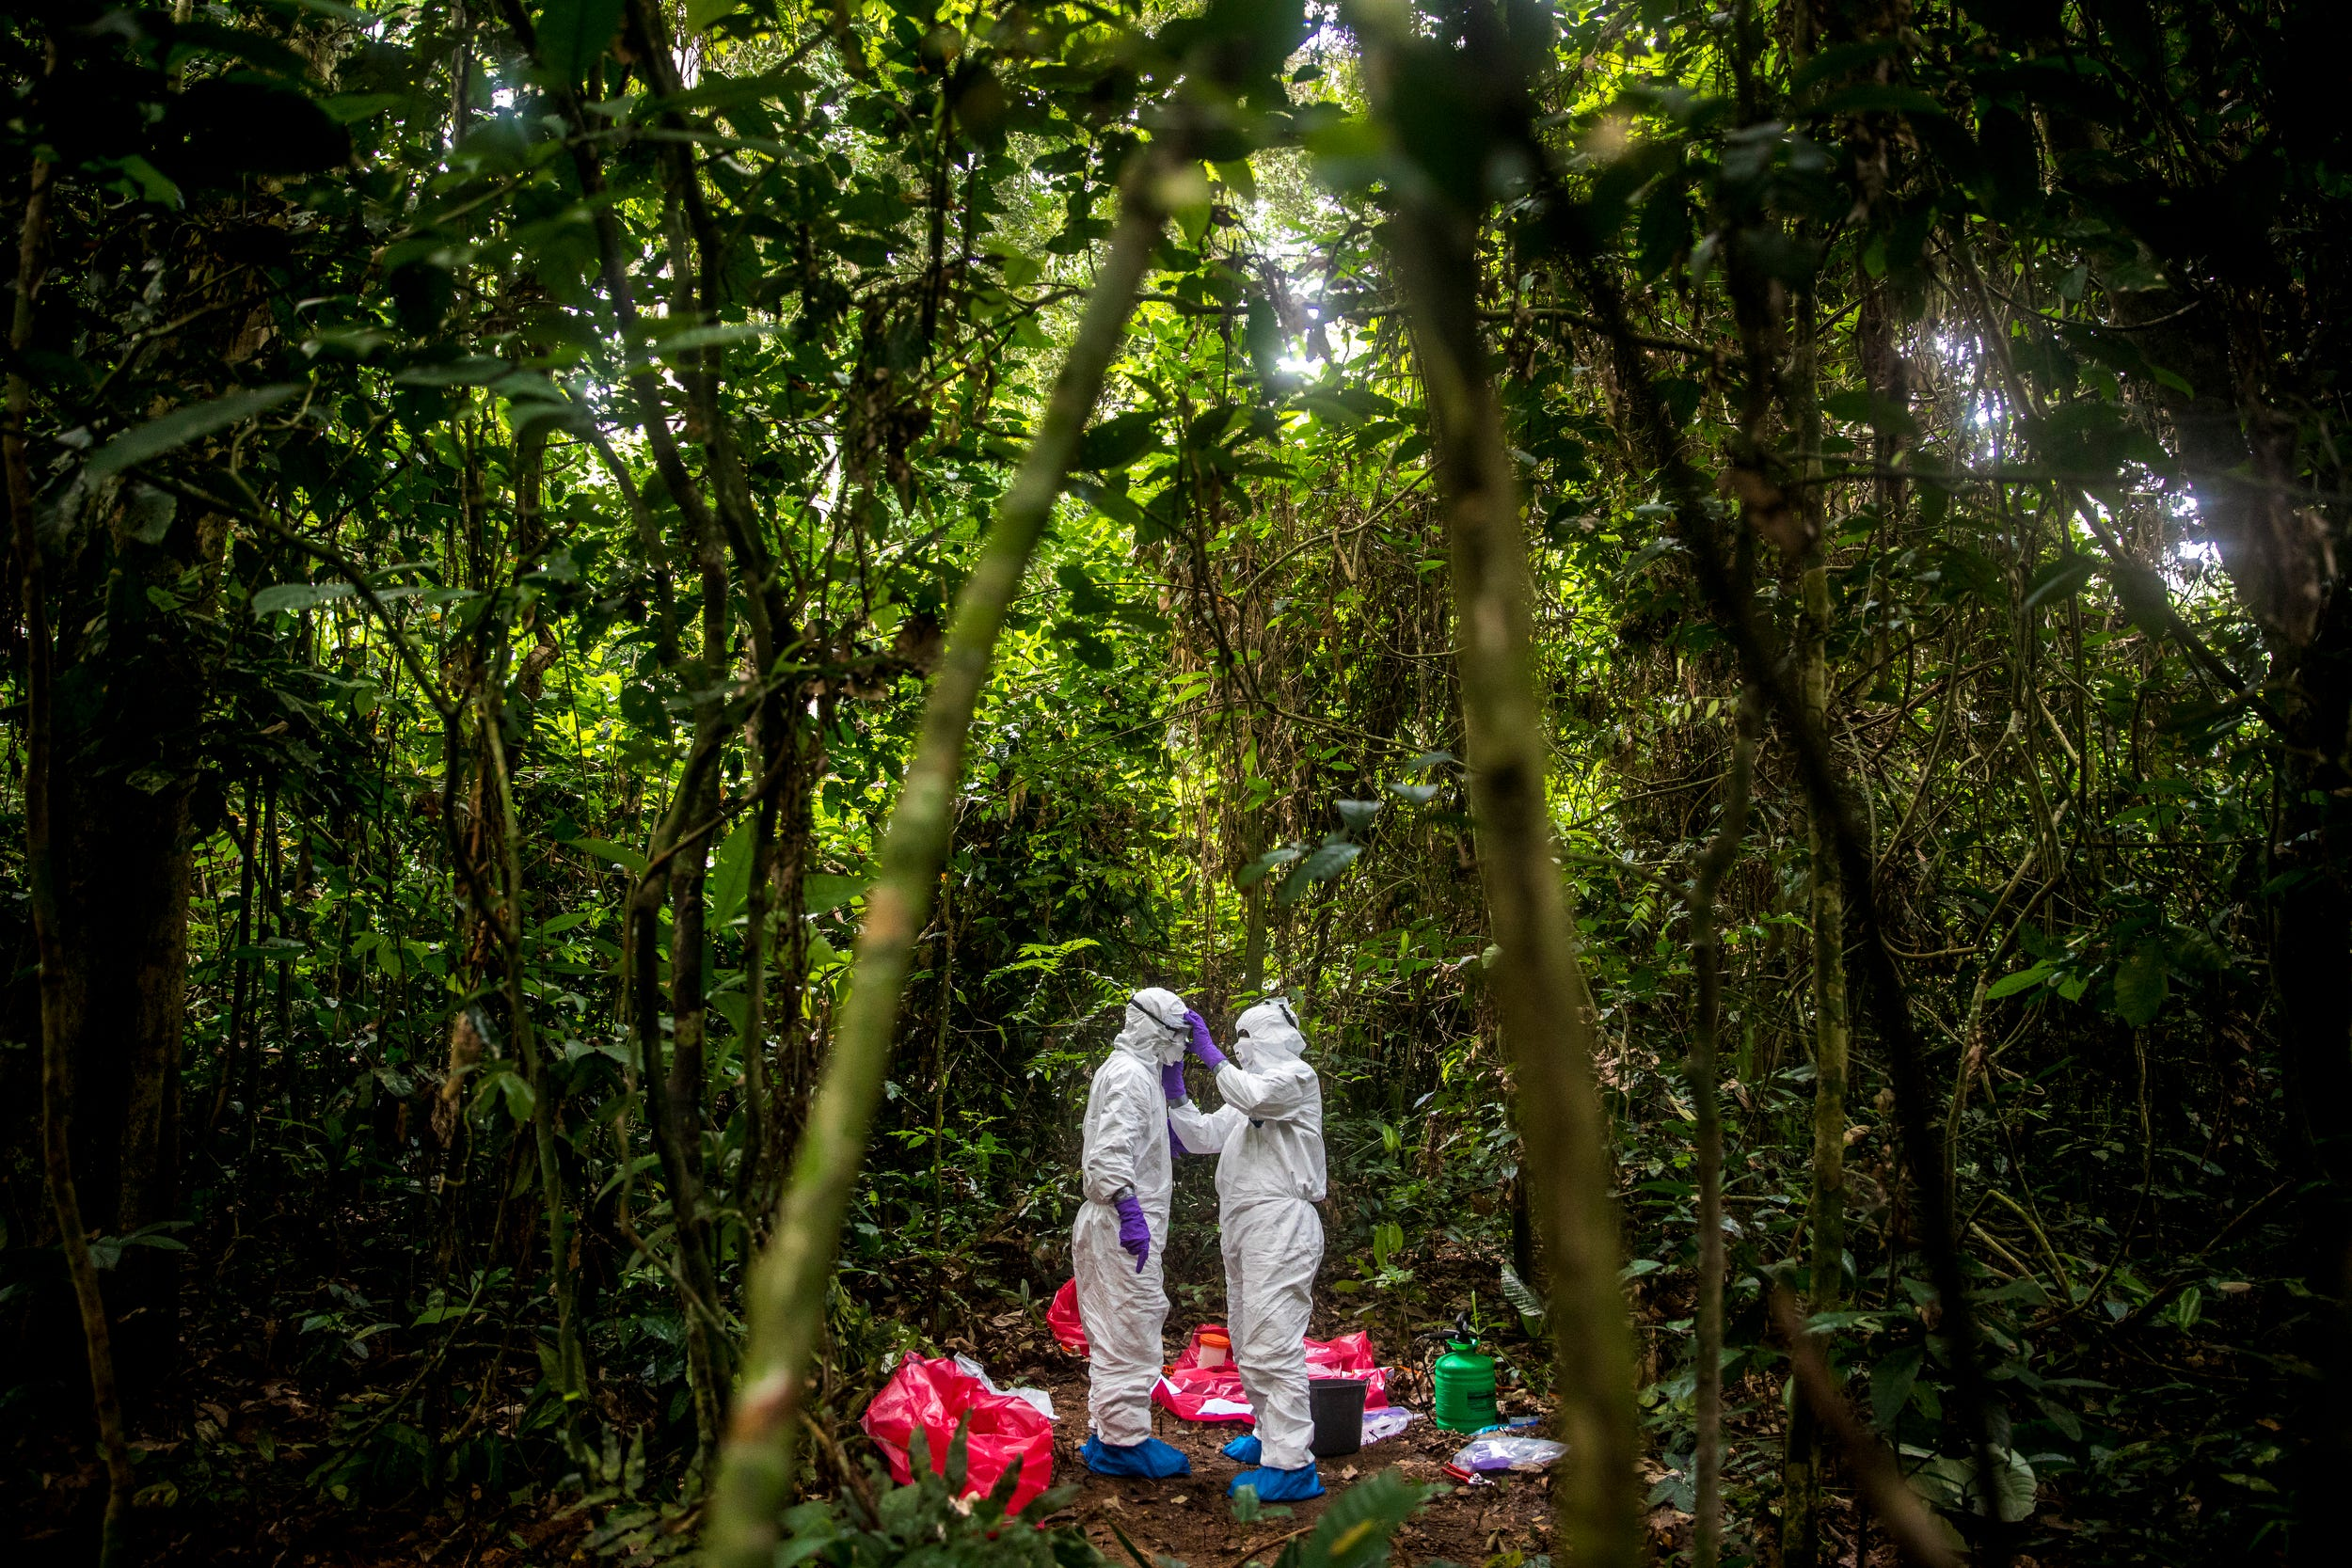 Severin Kialiema, a research assistant, helps cover the face of Juan Ortega, a researcher and the site manager of the Goualougo Triangle Ape Project, before Juan collects samples from Etecko's body. The two men must follow health precautions by completely covering their body.